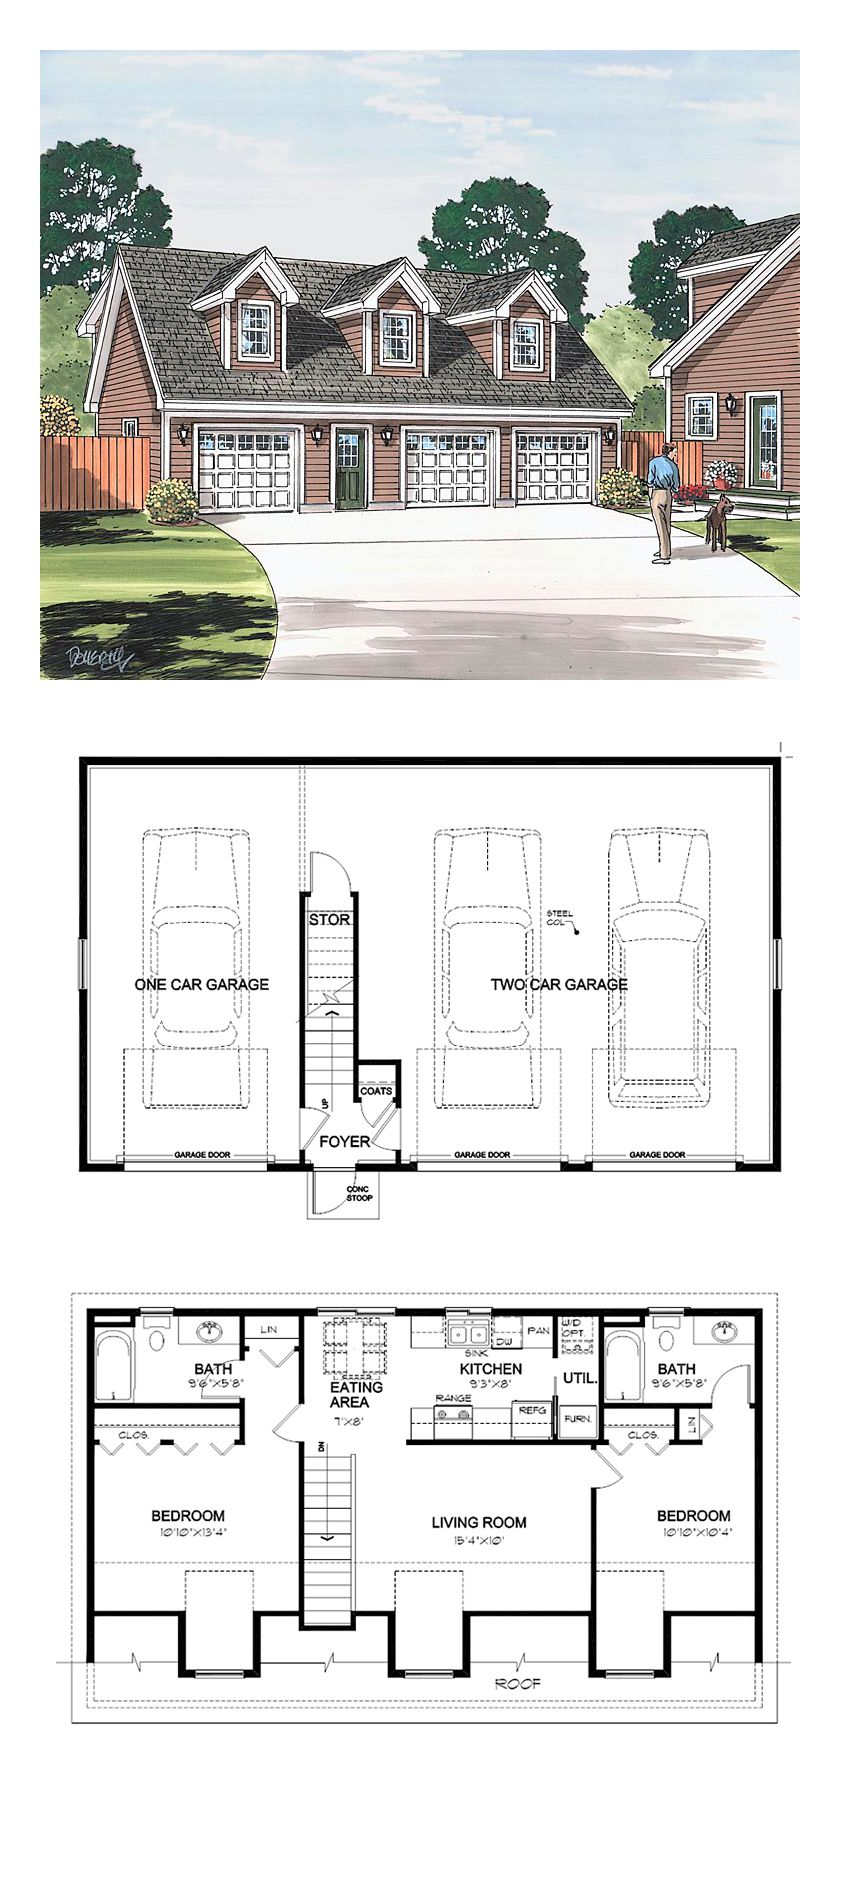 Garage apartment plan 30032 total living area 887 sq for Home over garage plans